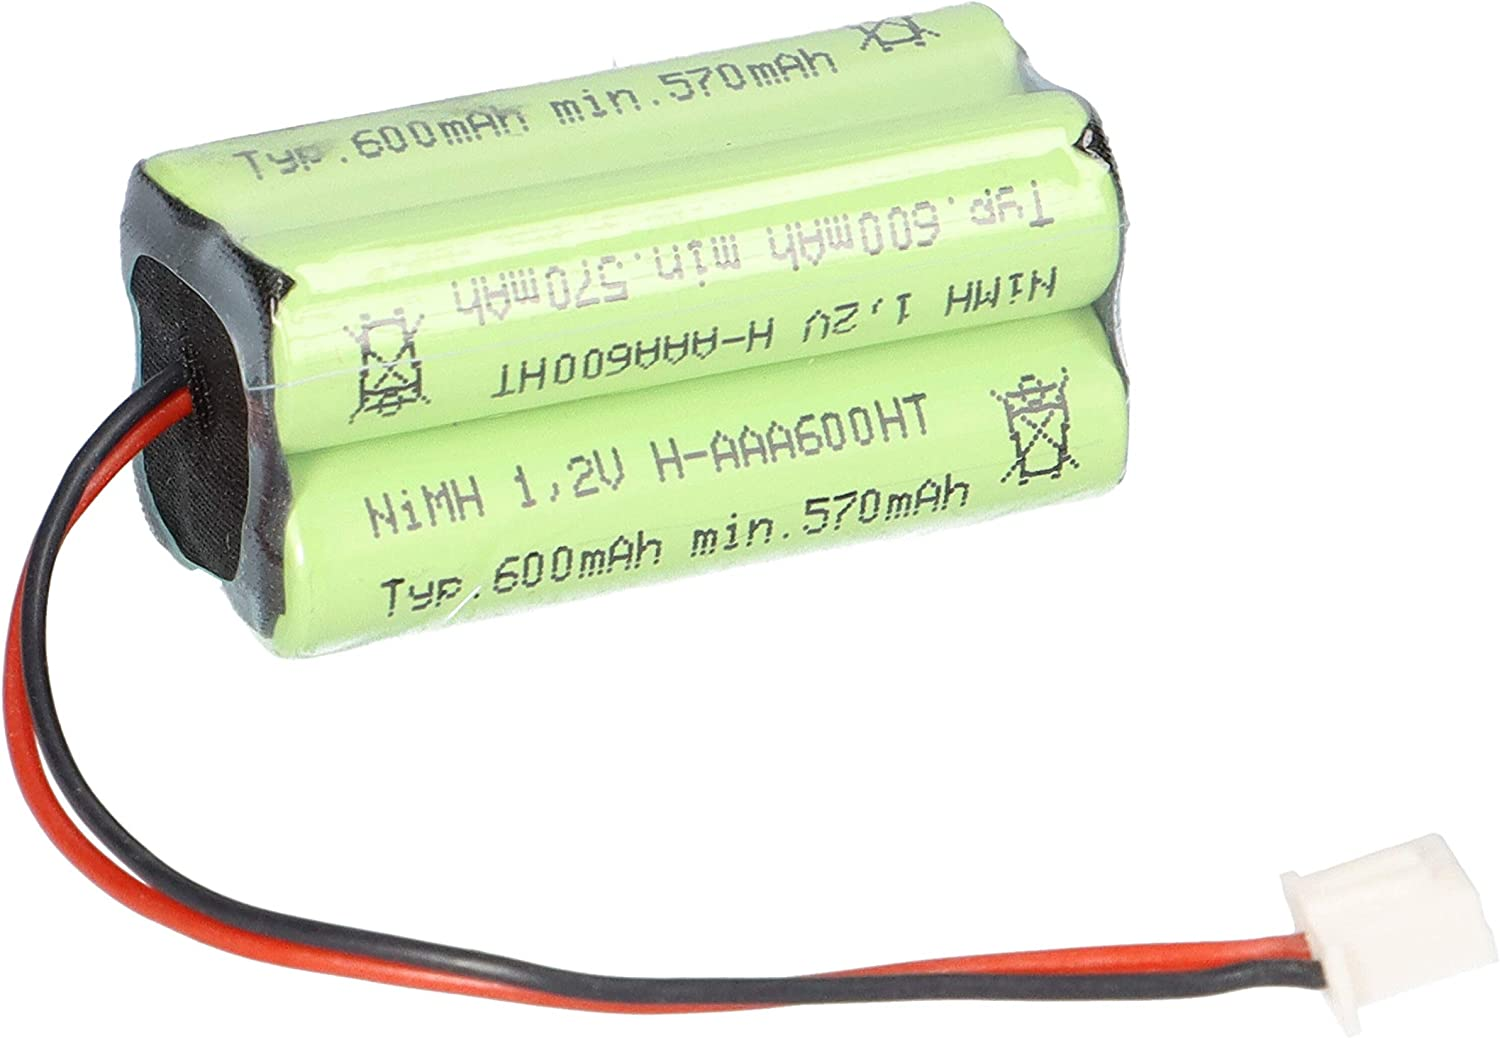 4//5SC 3000mAh für professionelle 4,8 V Ni-MH Akkus P-NGS 4,8 P-NGS4,8 Batterie